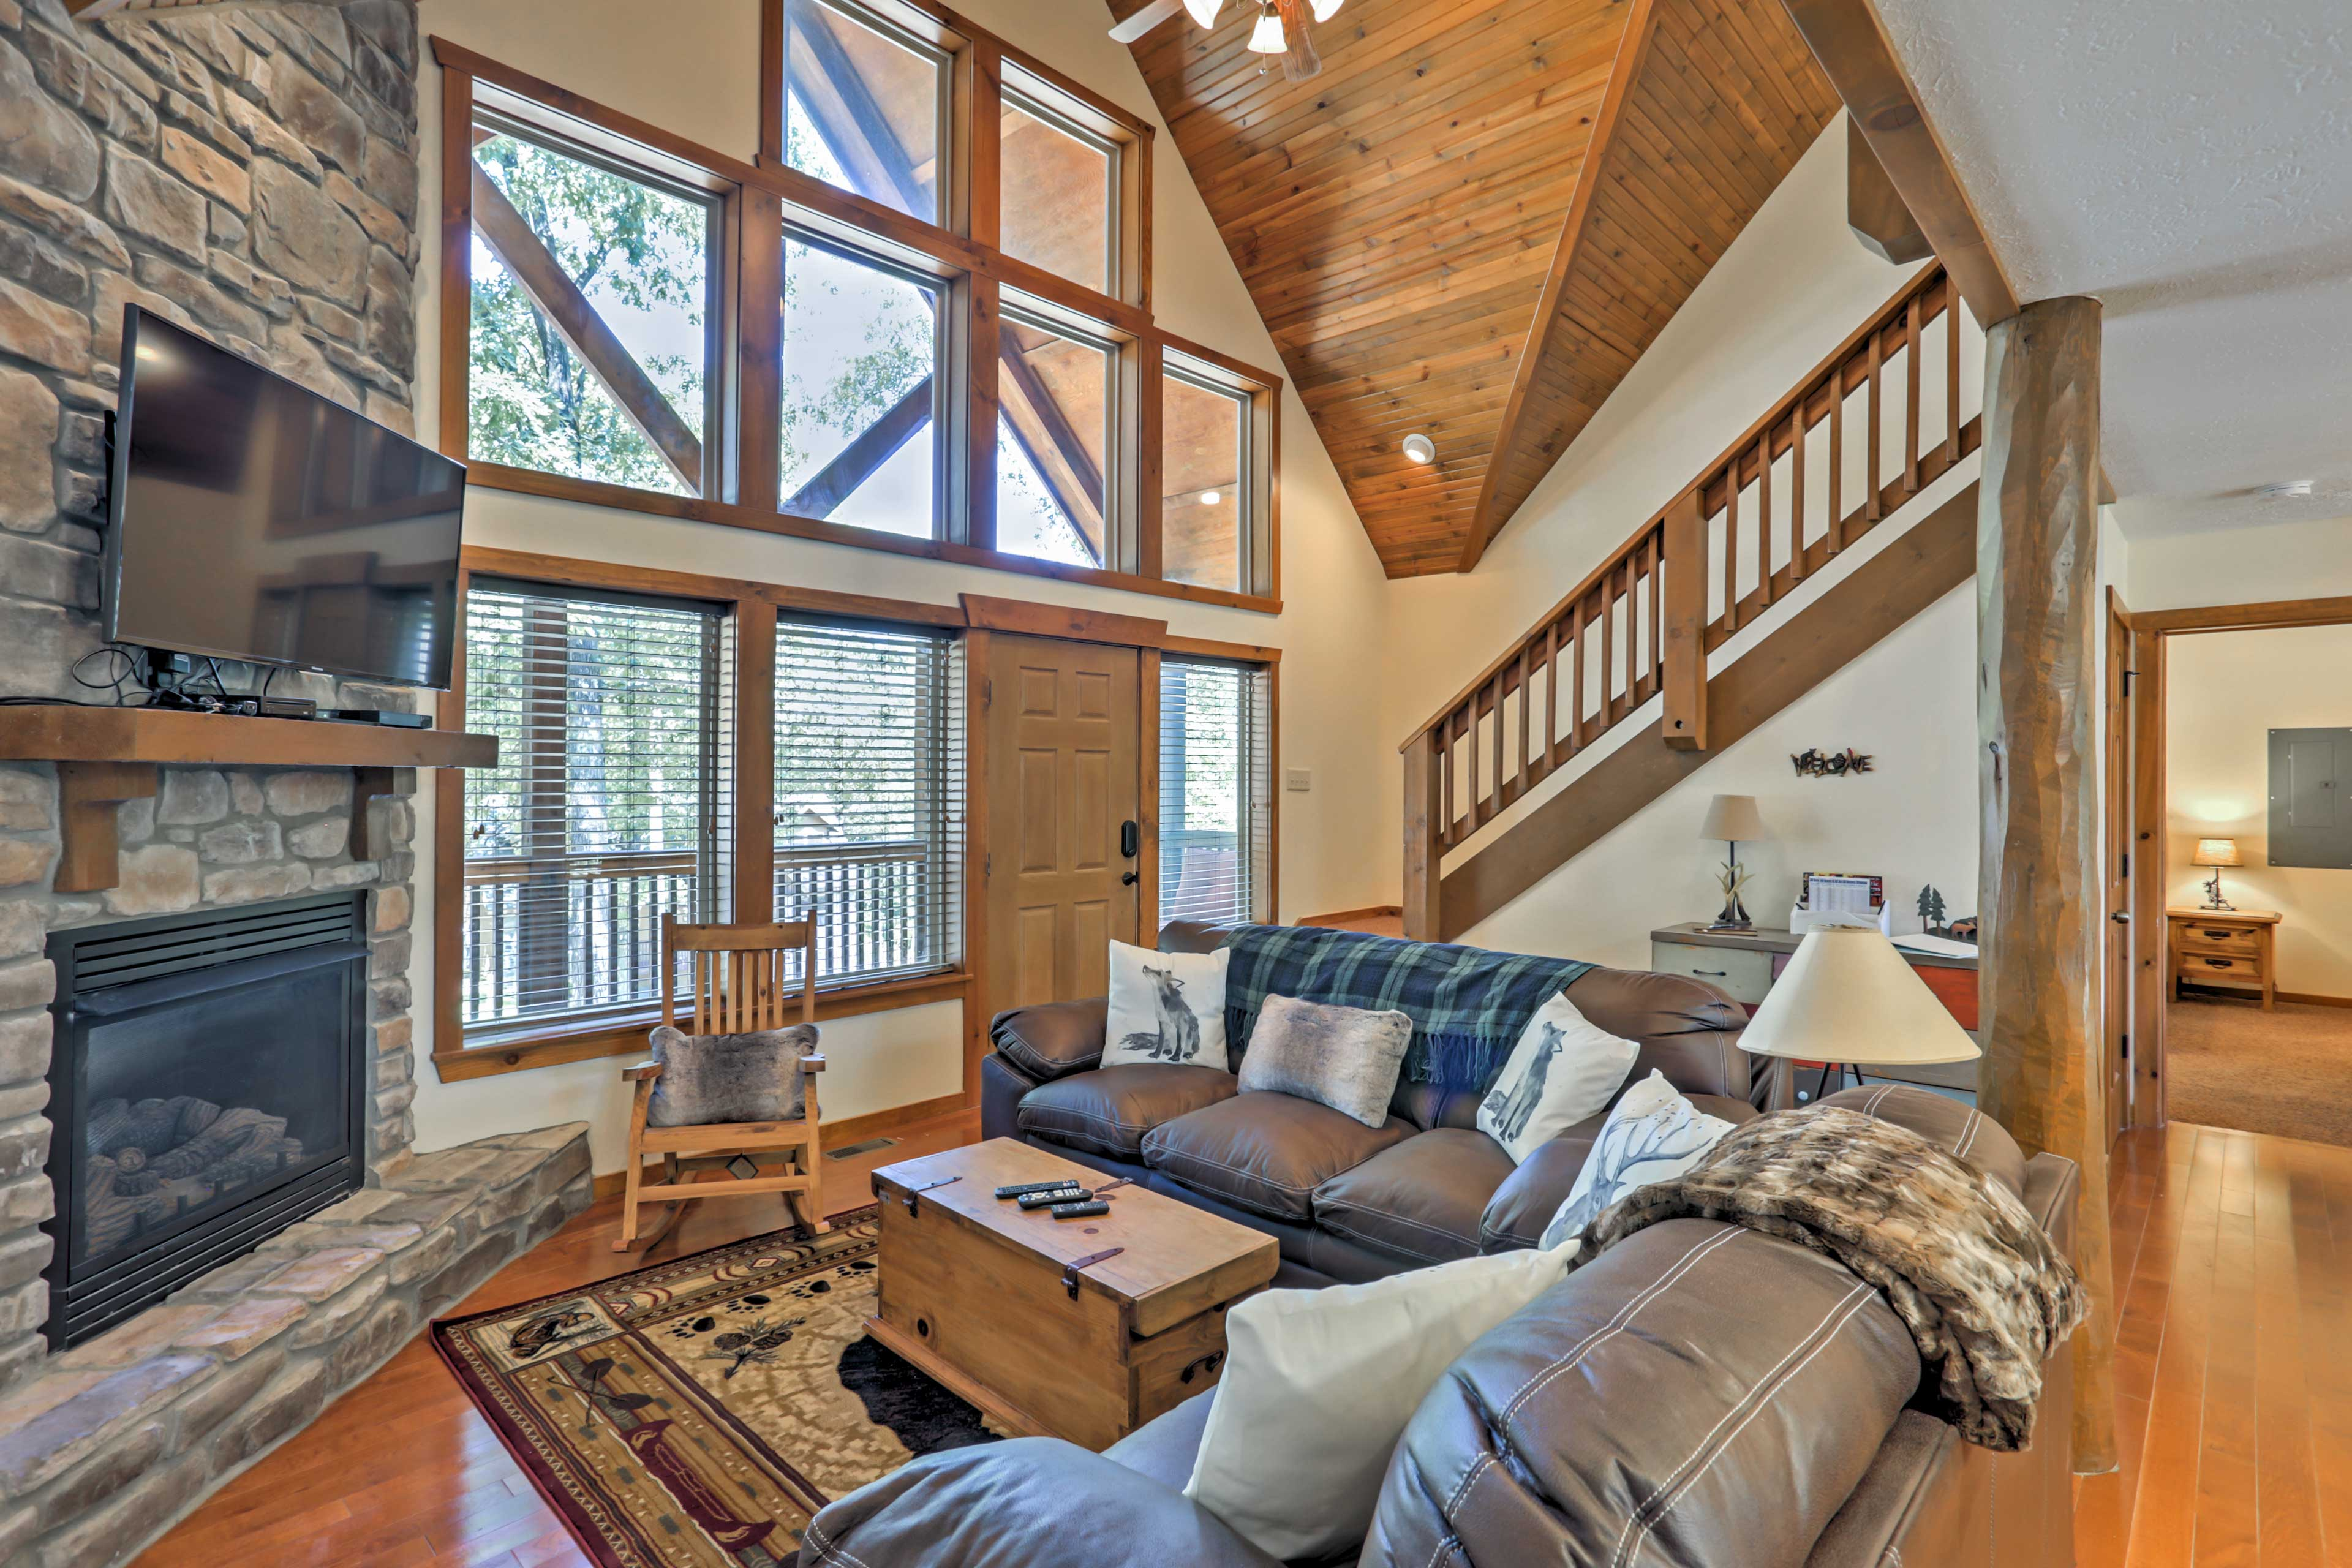 Branson Vacation Rental Cabin   4BR   4BA   2,100 Sq Ft   Private Entrance